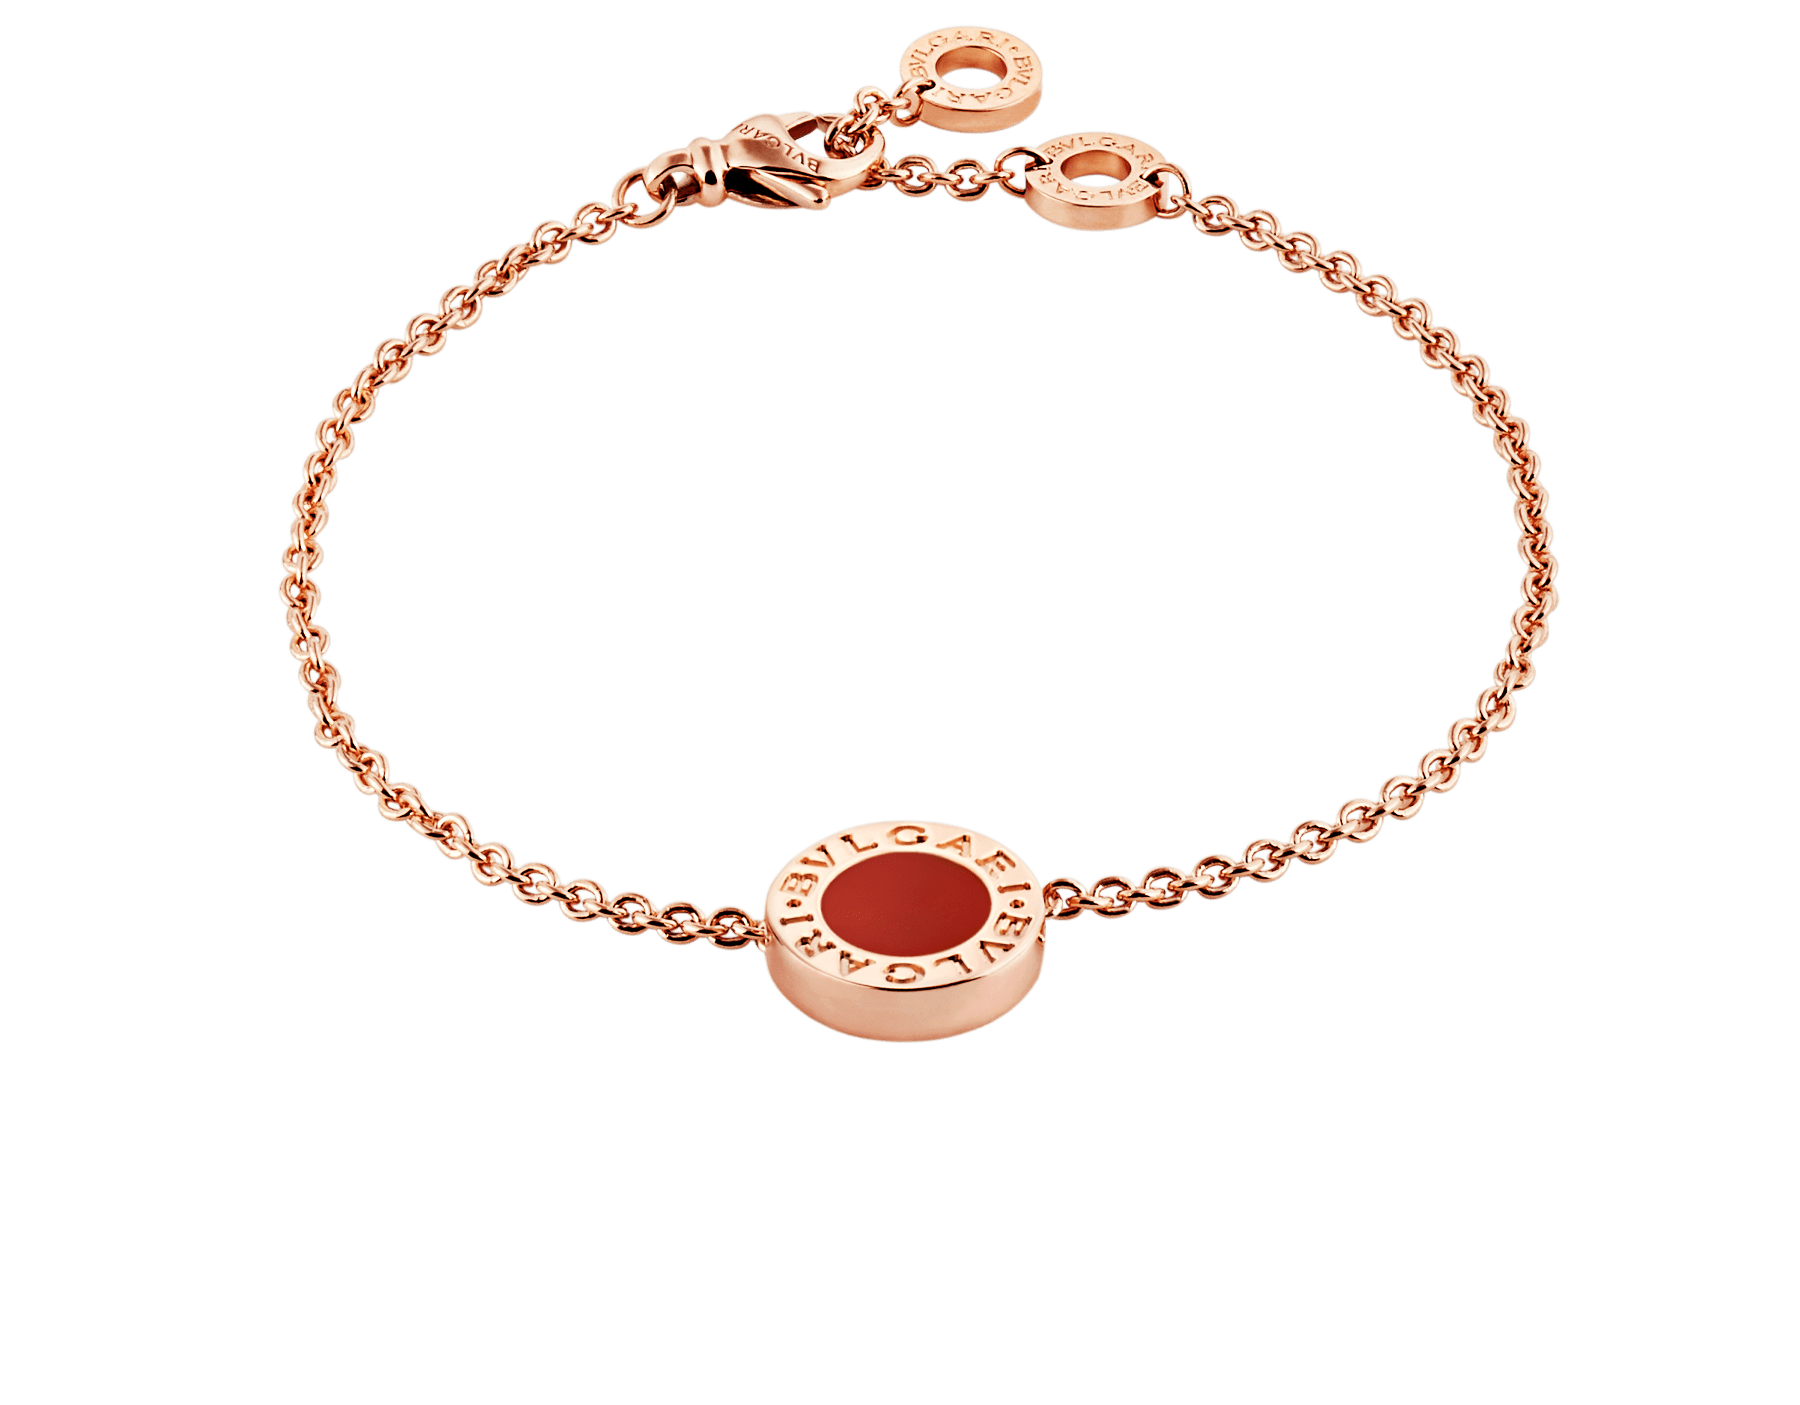 BVLGARI BVLGARI bracelet in 18 kt rose gold set with carnelian and mother-of-pearl round inserts. BR858008 image 1